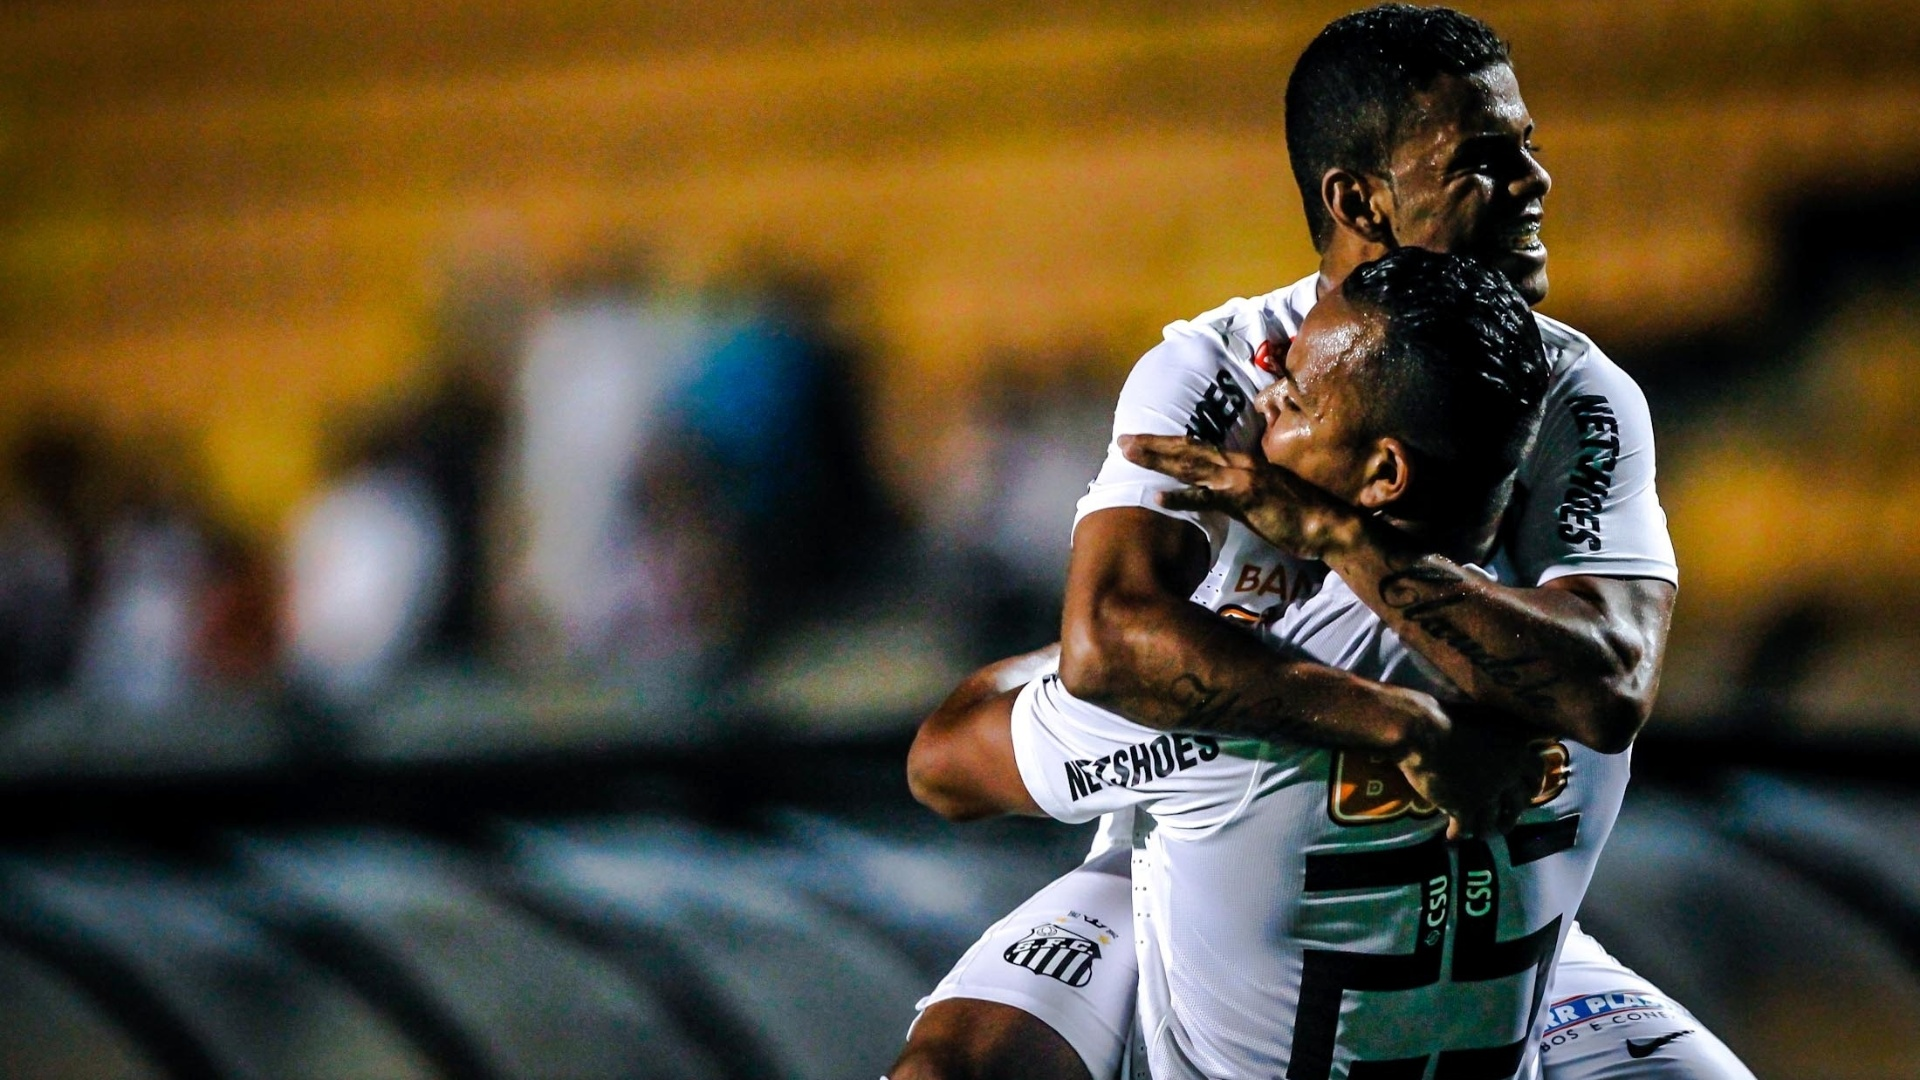 16.jan.2013 - Jogadores do Santos celebram um dos gols na vitria por 4 a 0 contra o Barueri em amistoso